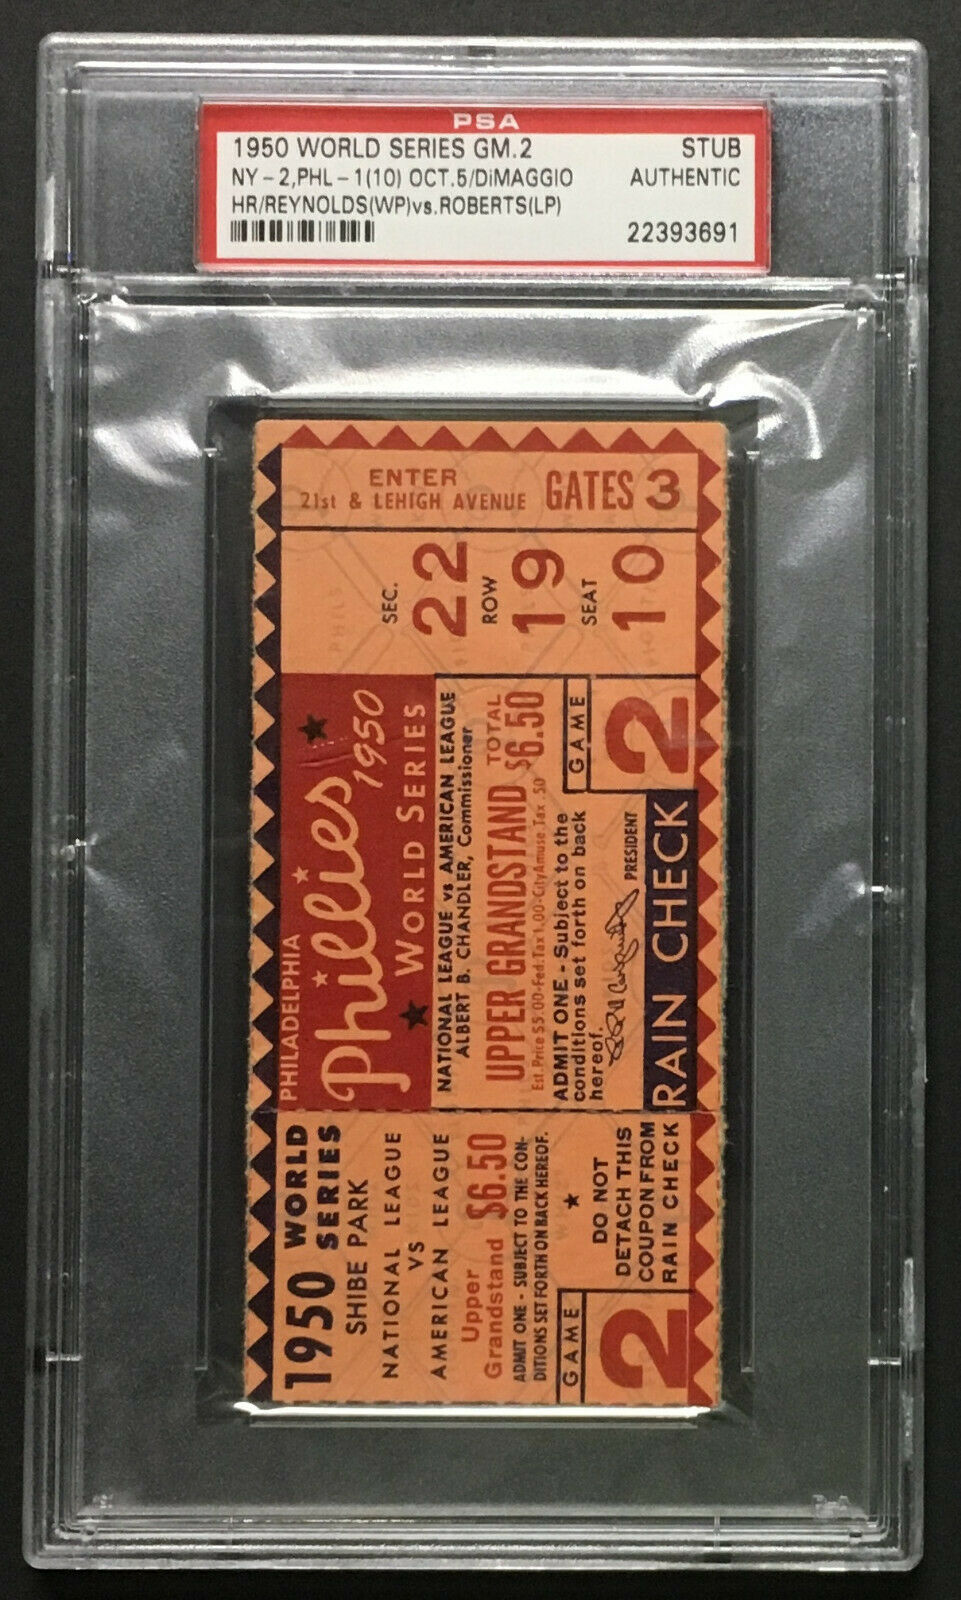 1950 World Series Ticket Game 2 PSA Authentic New York Yankees vs Philadelphia